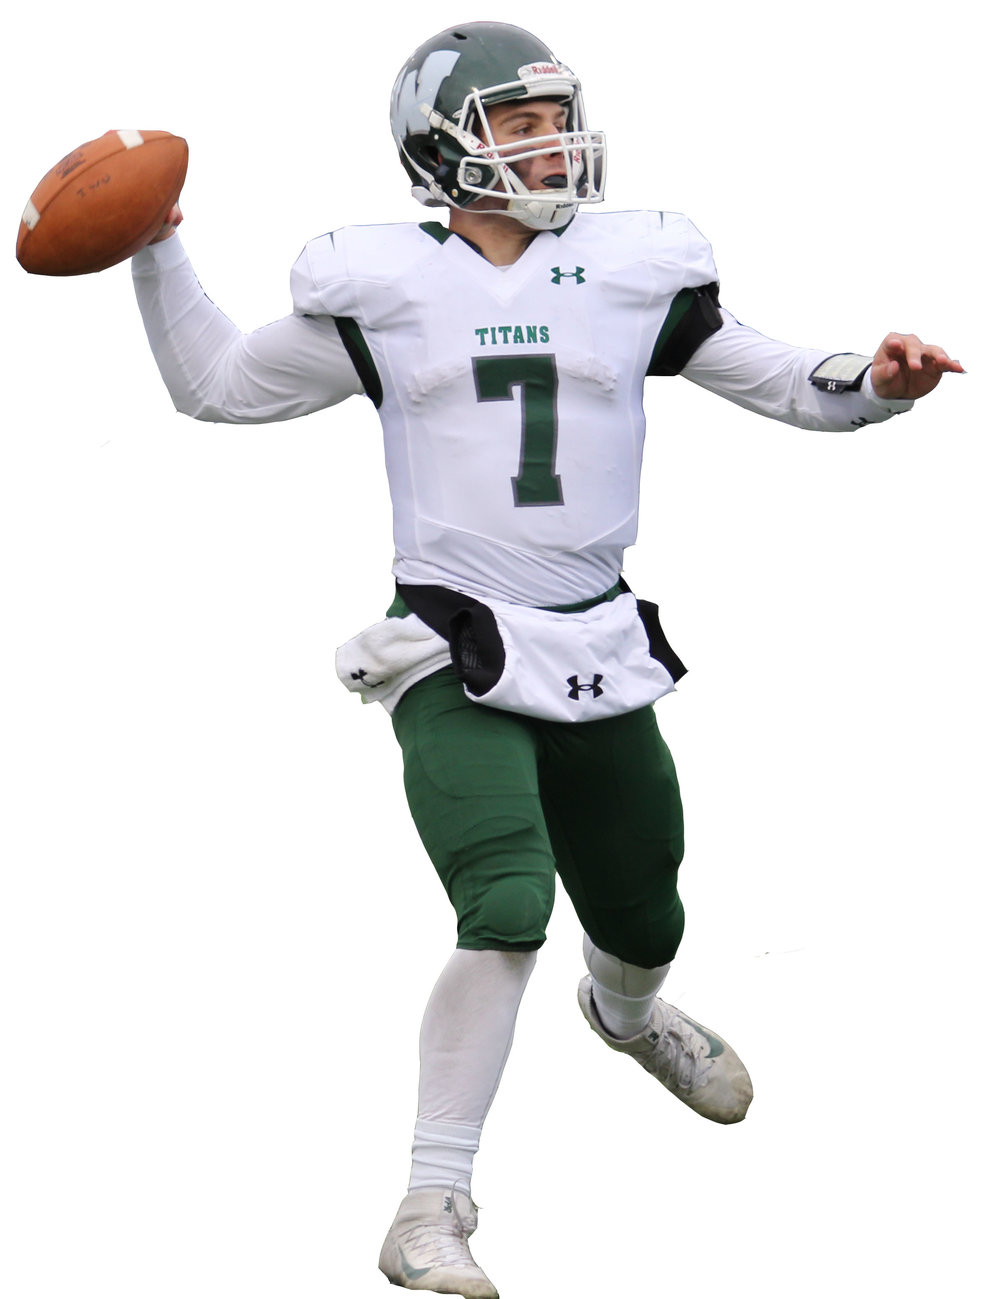 Illinois Wesleyan quarterback Brandon Bauer rolls out to pass against EC. Photo by Cole Sheeks